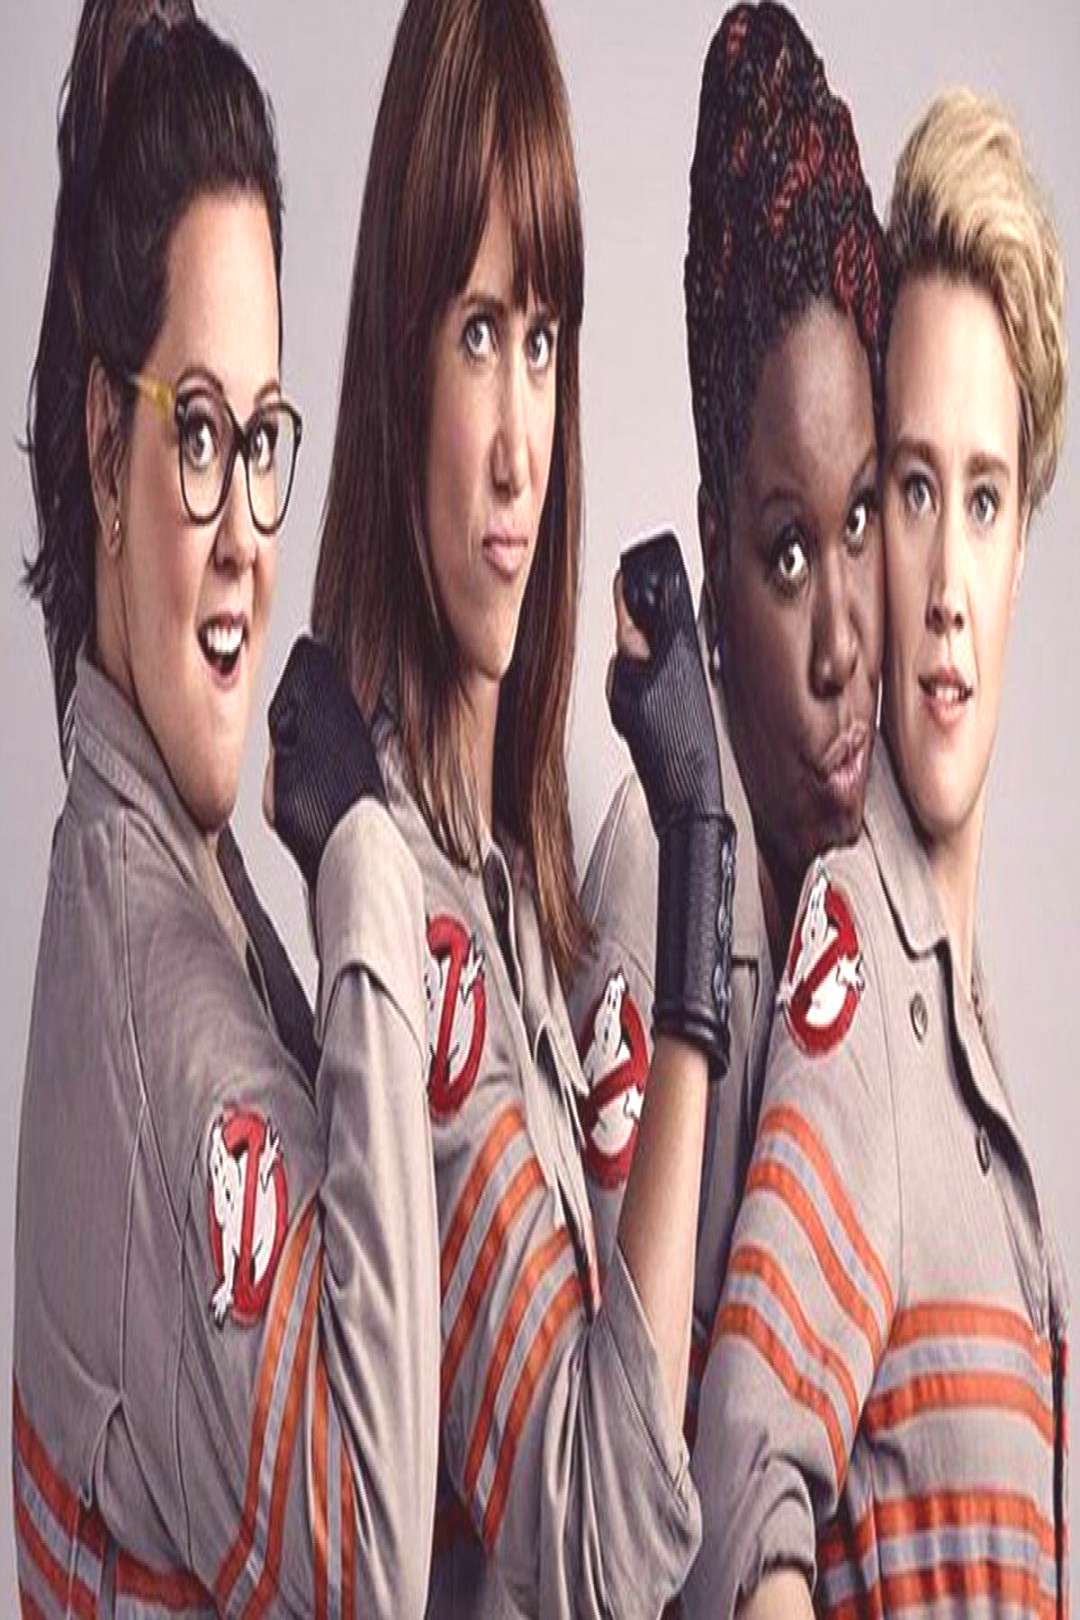 'Ghostbusters' Reboot Director Knows Why His Movie Failed Miserably#director...#director